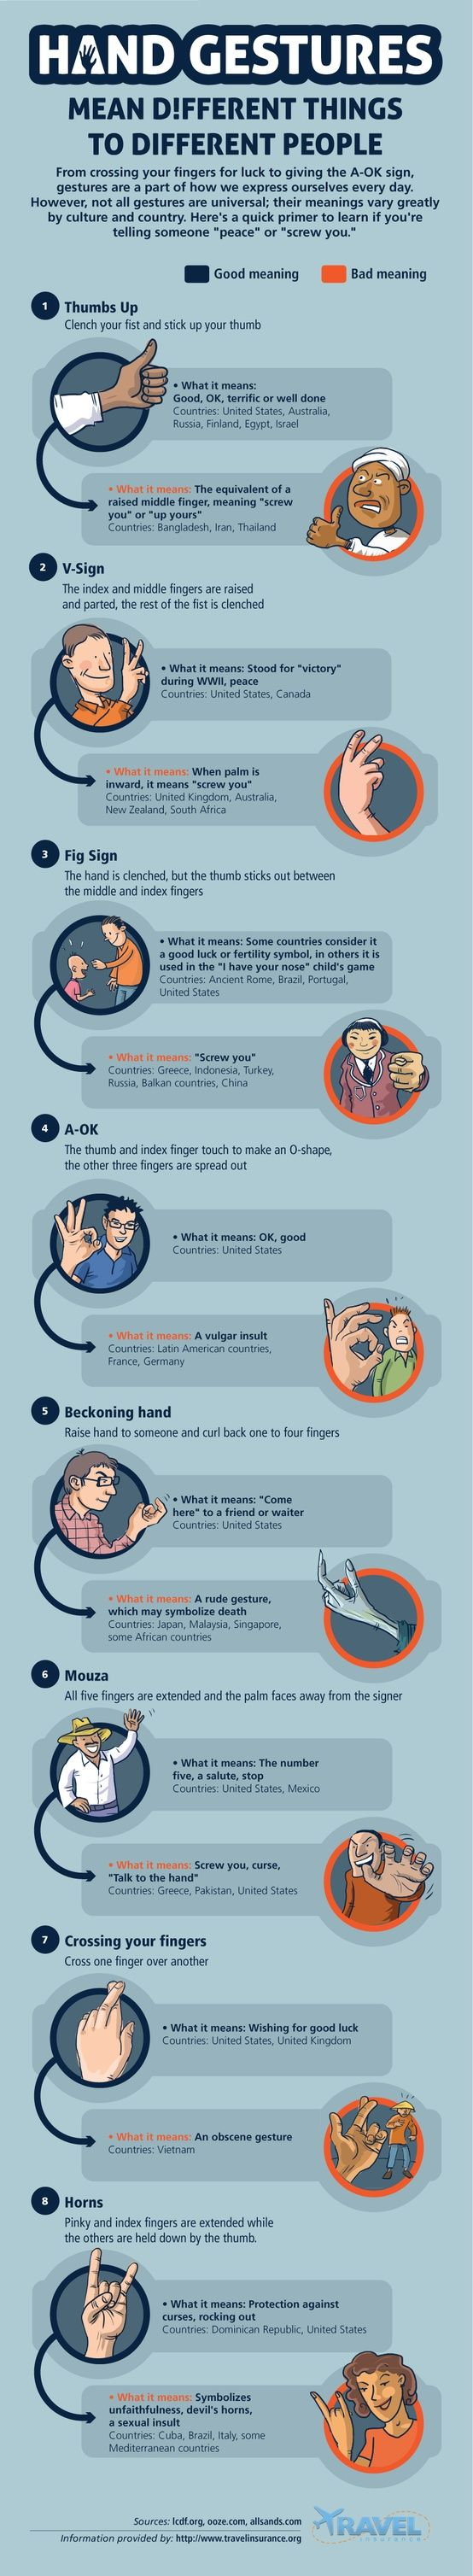 Hand Gestures Infographic- the kids love this one- they have always heard rumors of our gestures having different meanings in other countries- this is not only good for students to learn, but the premise behind valuing differences and respecting cultures is incredibly important.